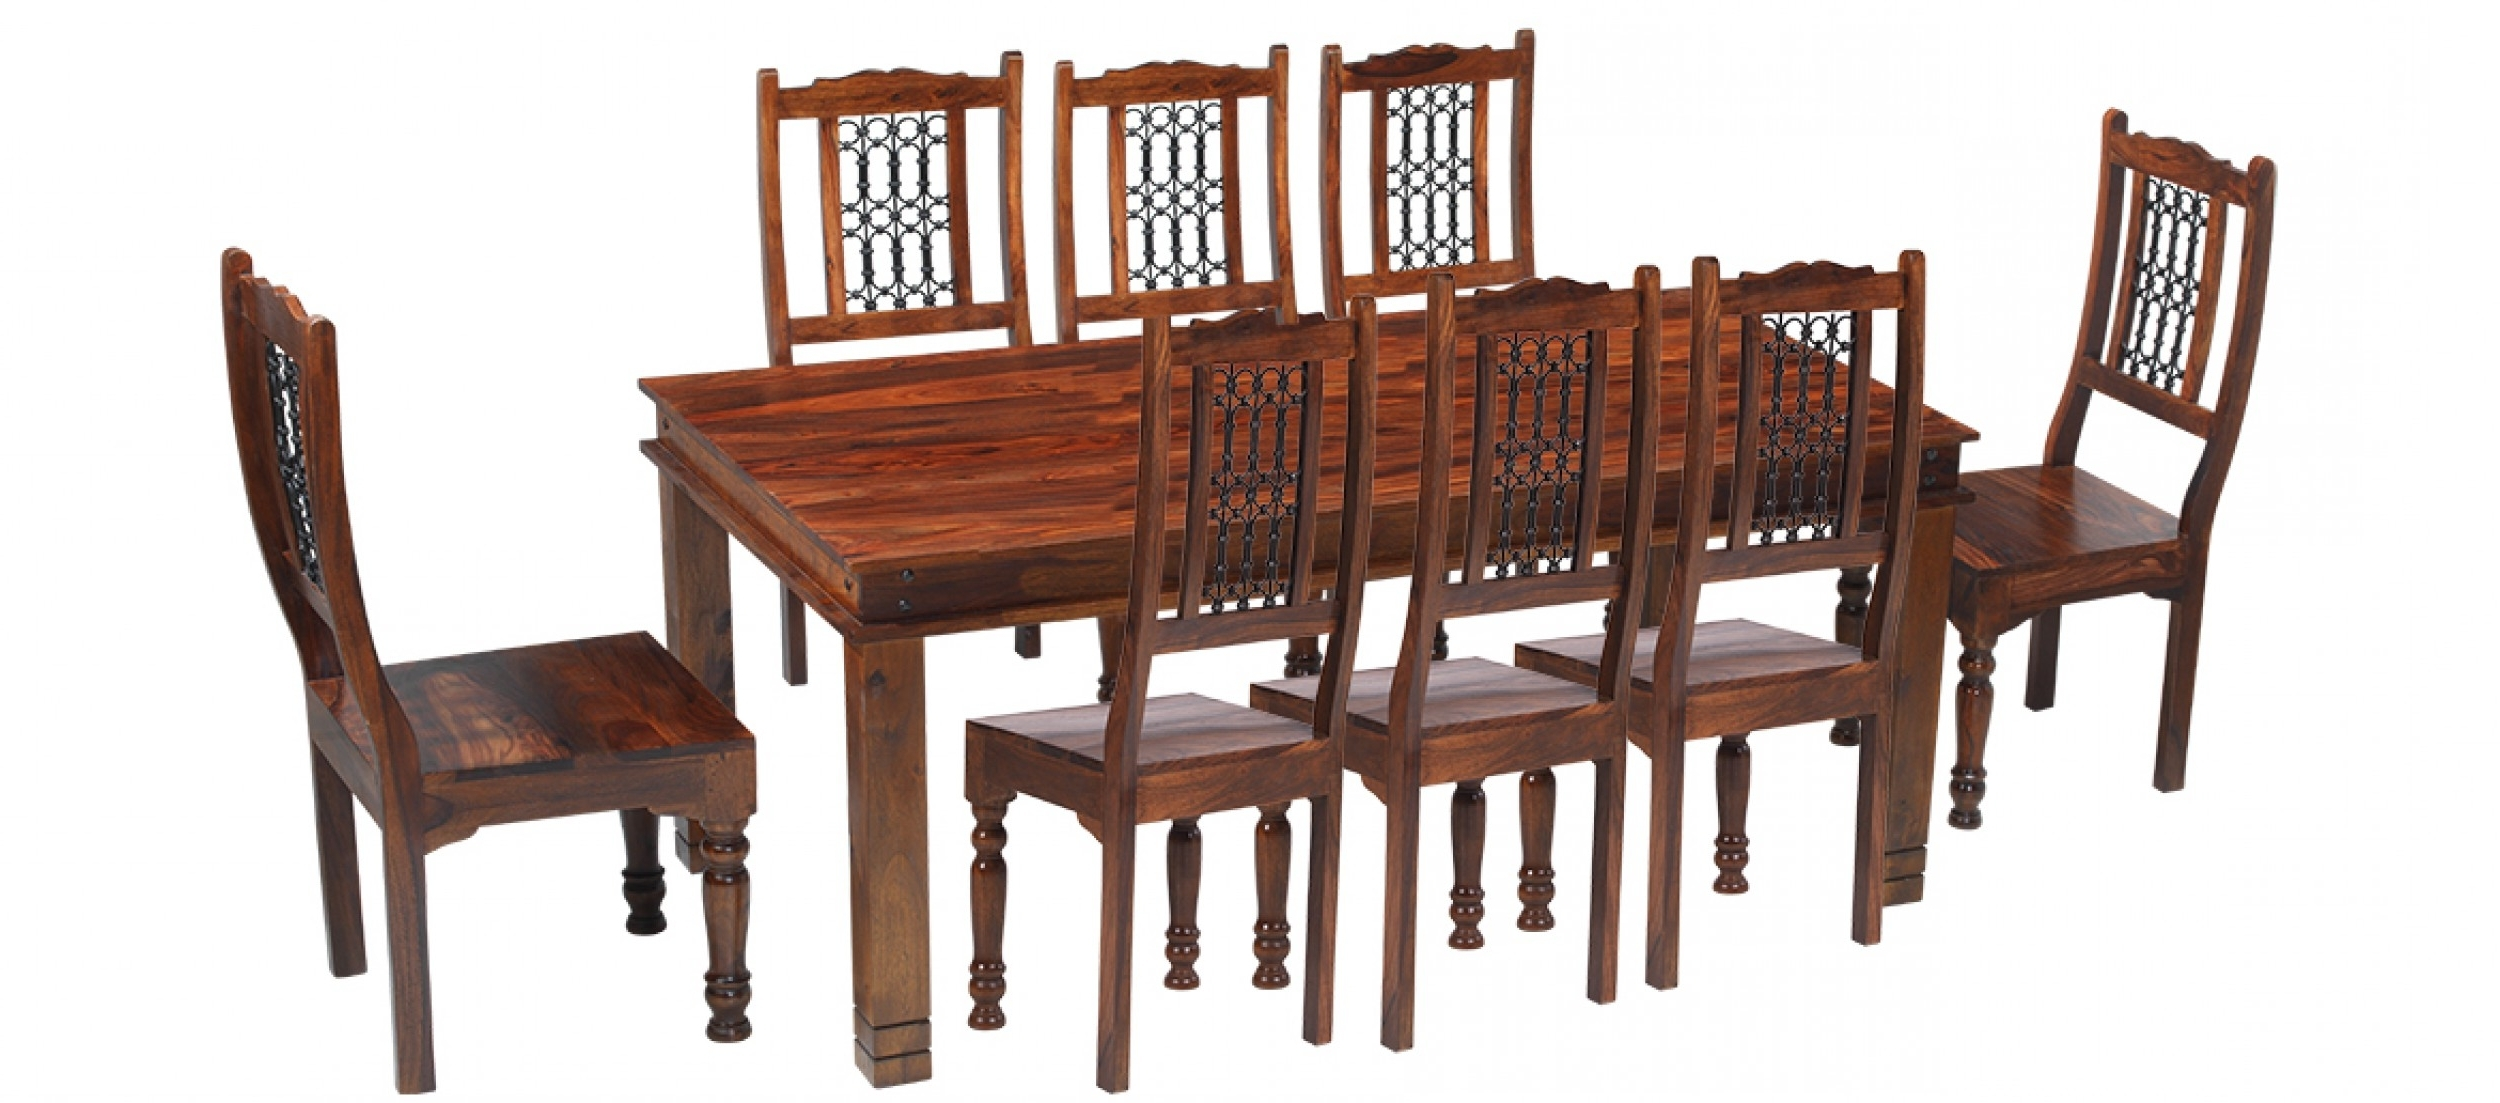 Quercus Living Pertaining To Solid Oak Dining Tables And 8 Chairs (View 11 of 25)